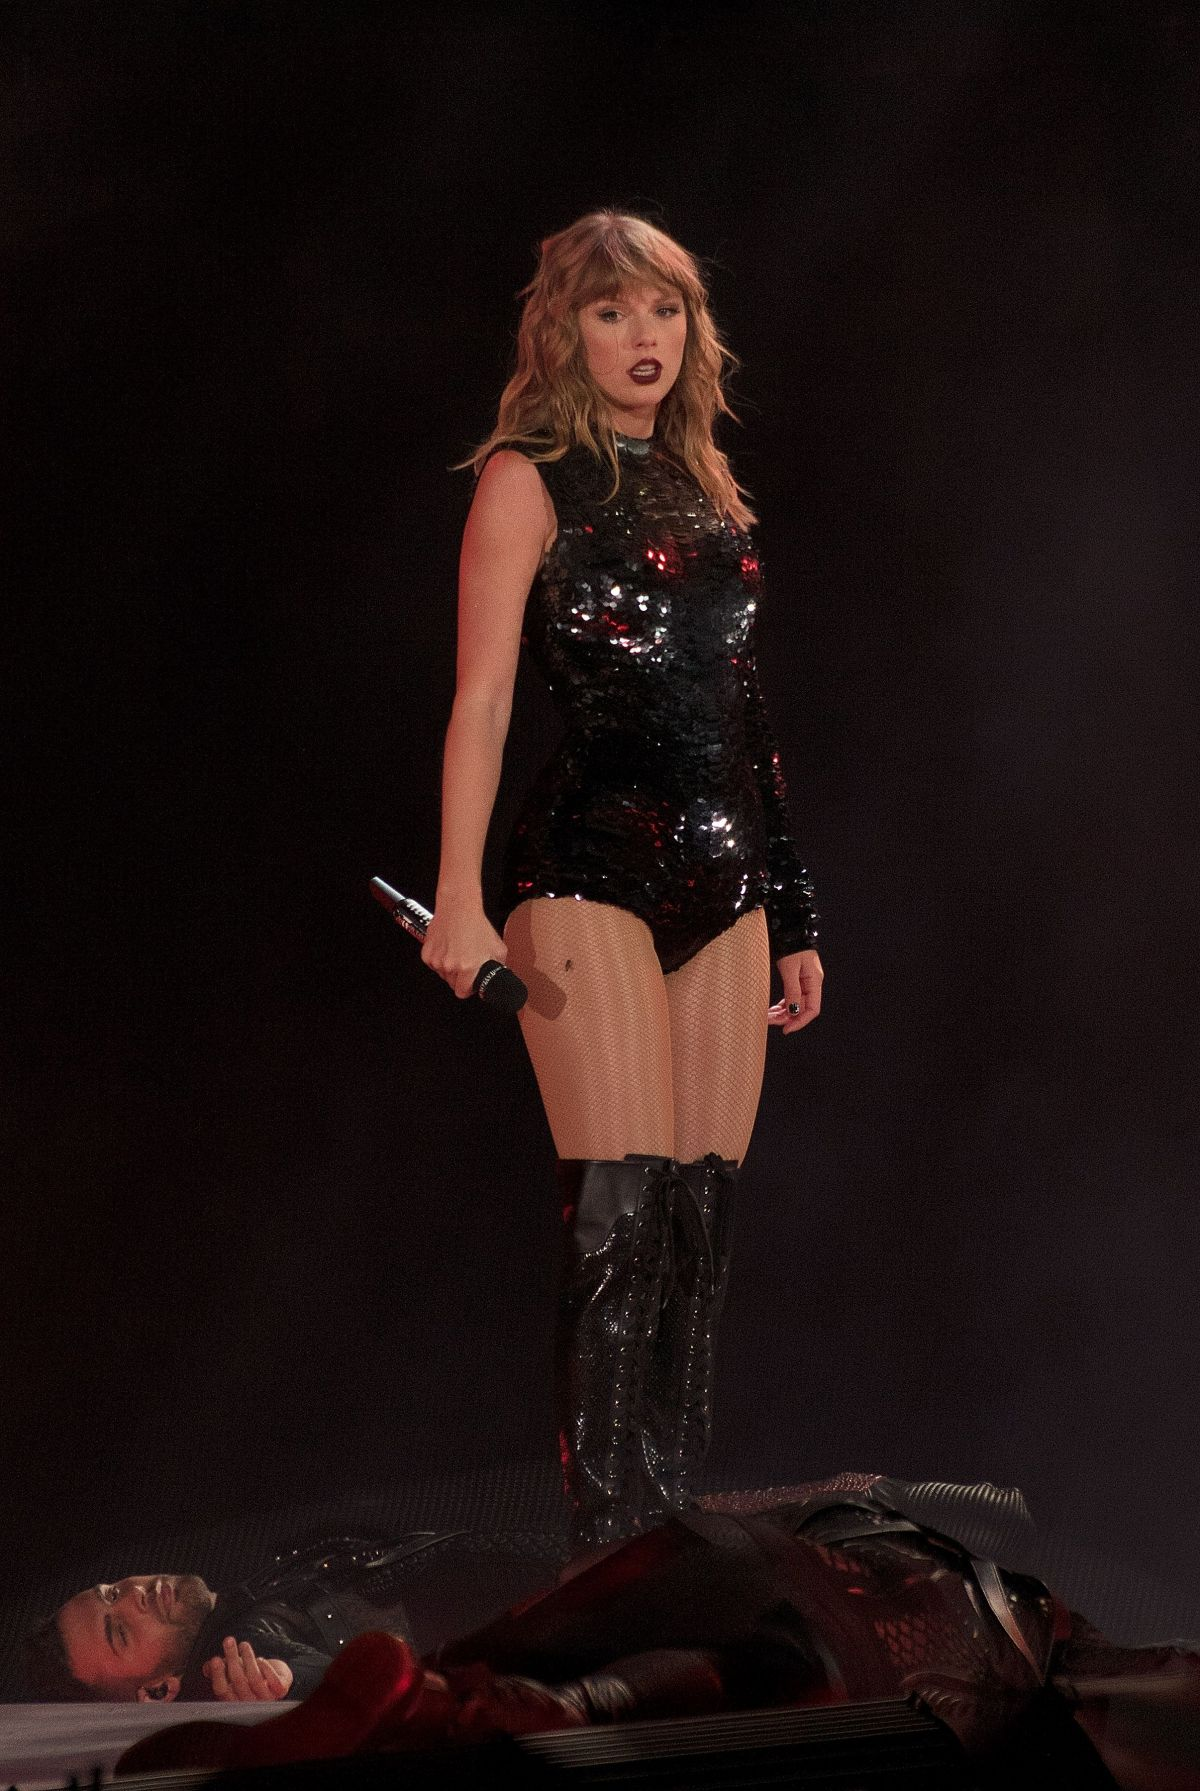 Who Is Hookup Taylor Swift 2018